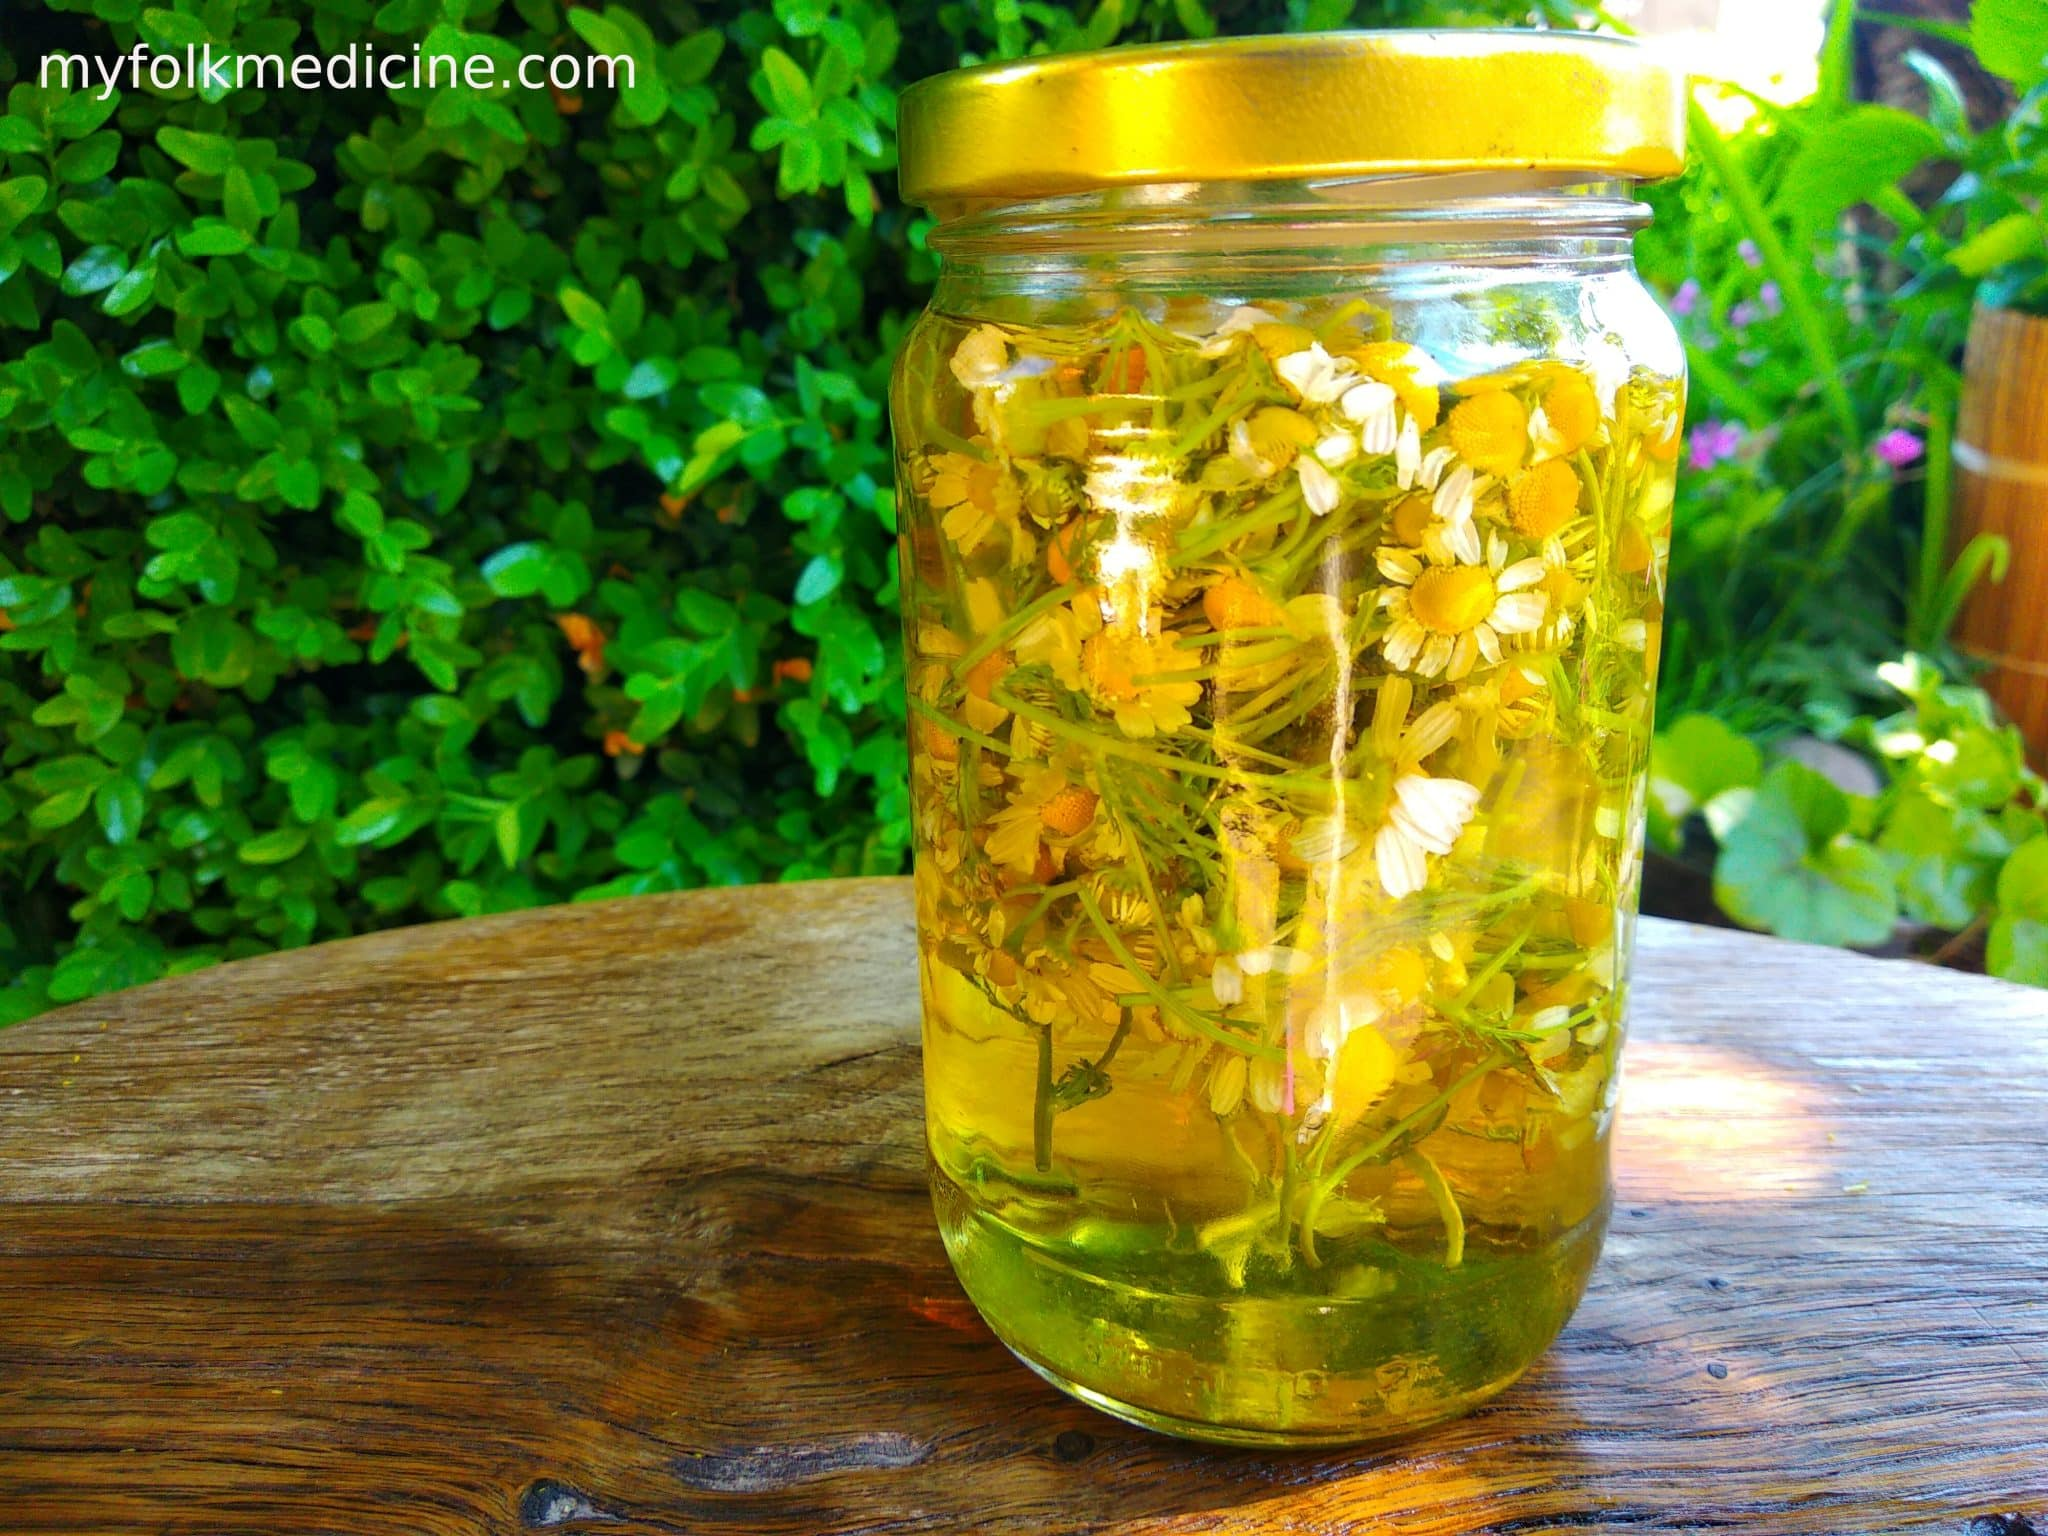 How To Make Chamomile Tincture at Home?